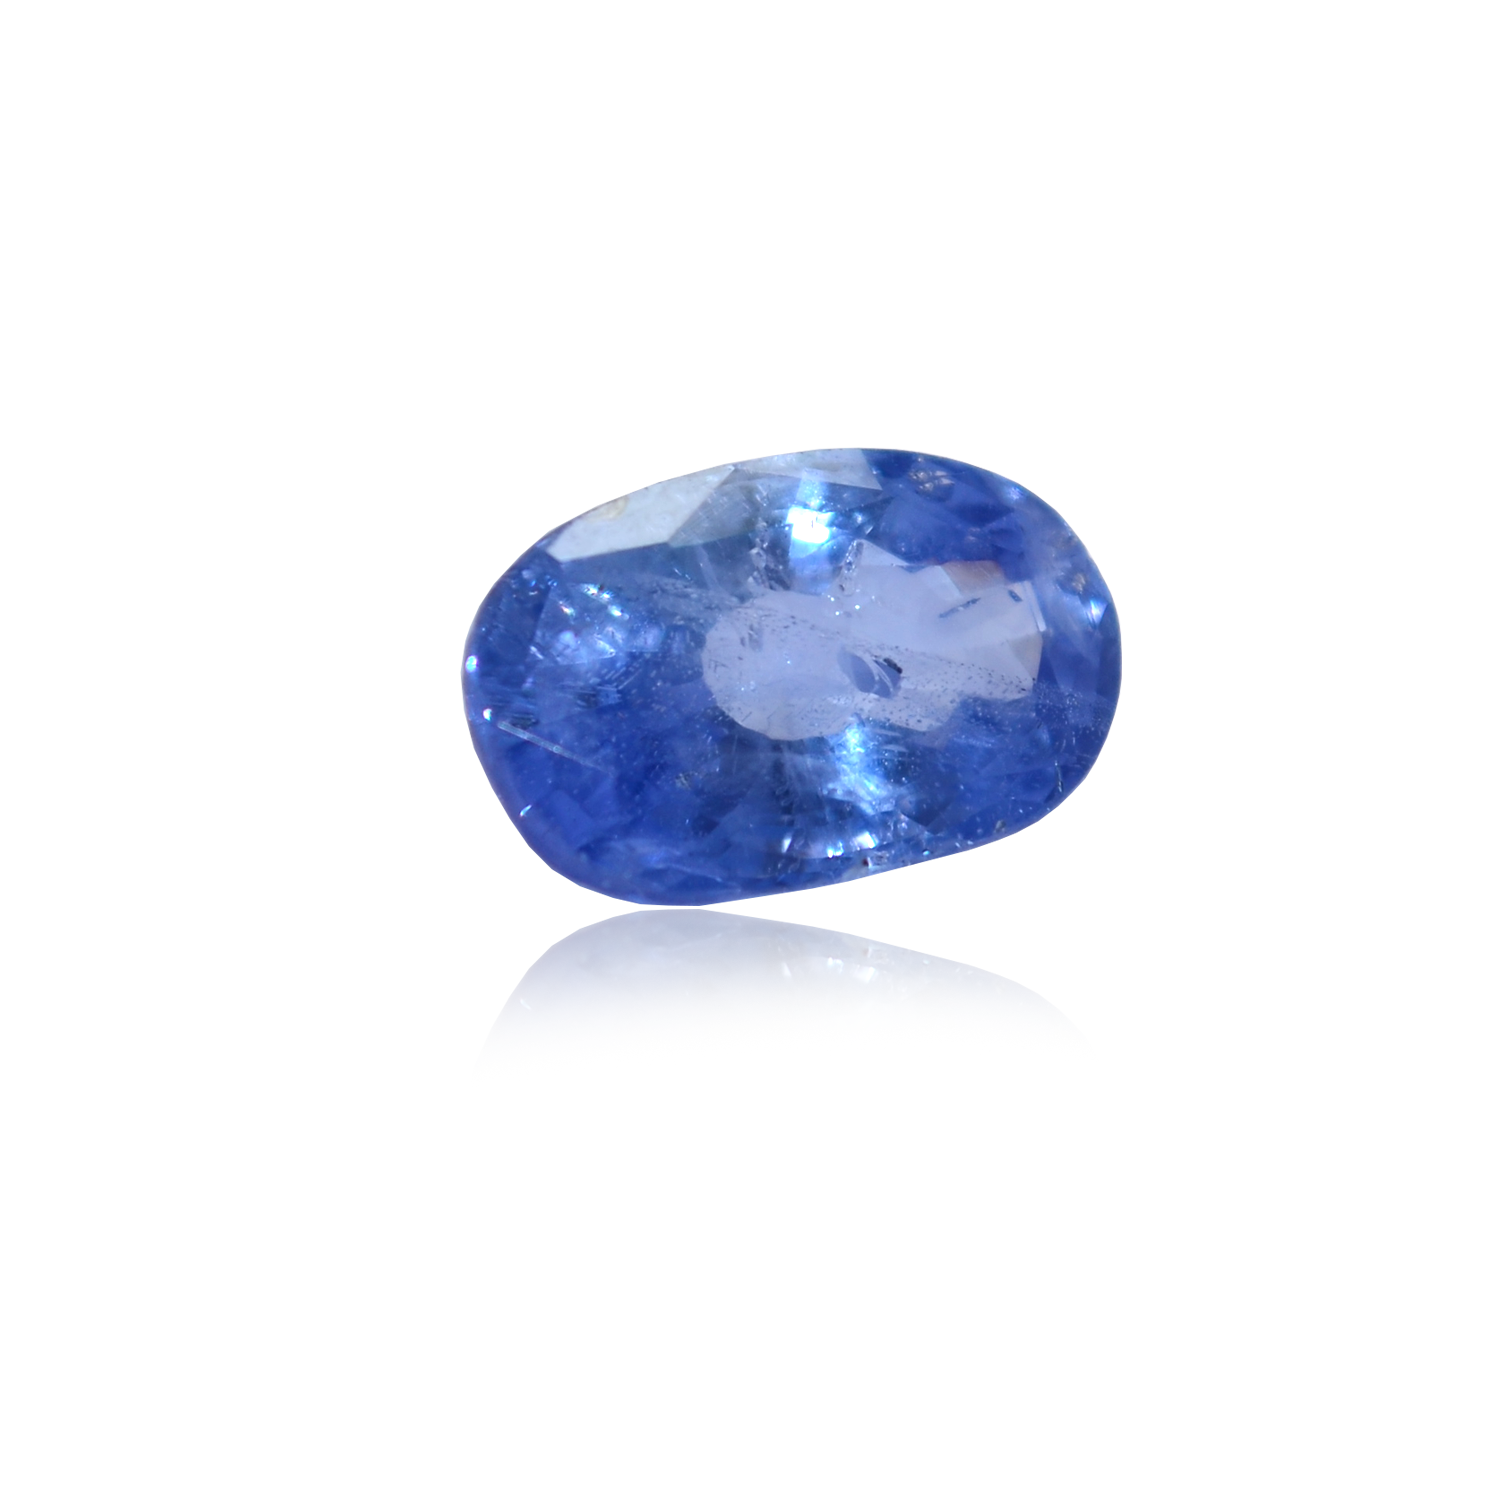 5.60 CARAT, OVAL MIXED CUT NATURAL BLUE SAPPHIRE